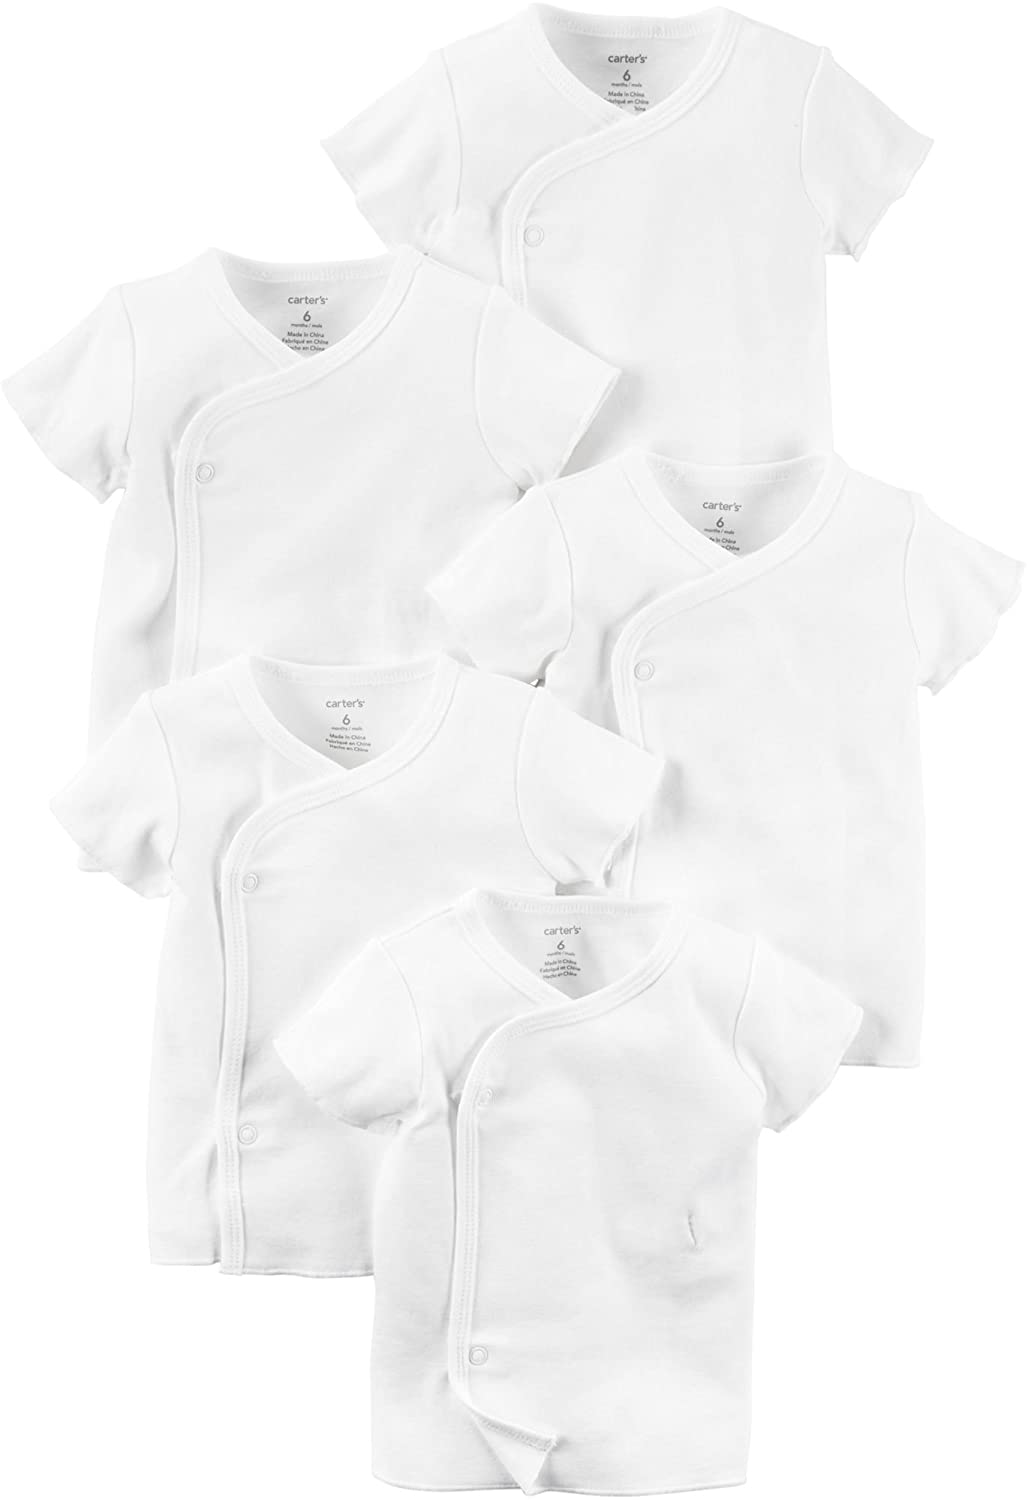 Carters Unisex Baby 5-Pack Short Sleeve Side Snap Tee, White, 9M Carter's